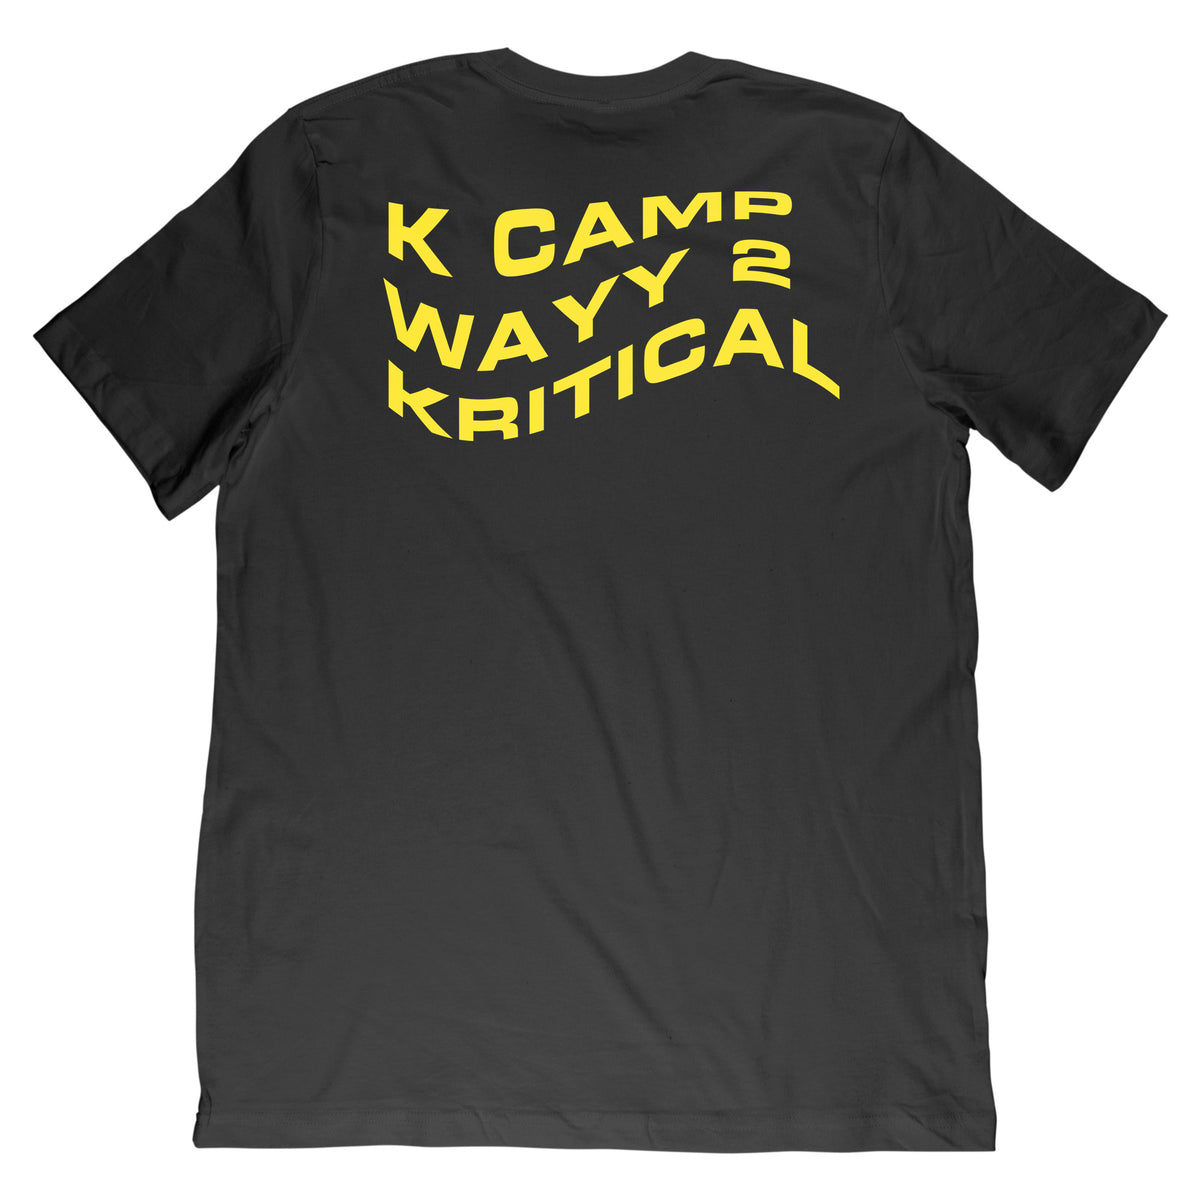 Wayy 2 Kritical Tee + Digital Album